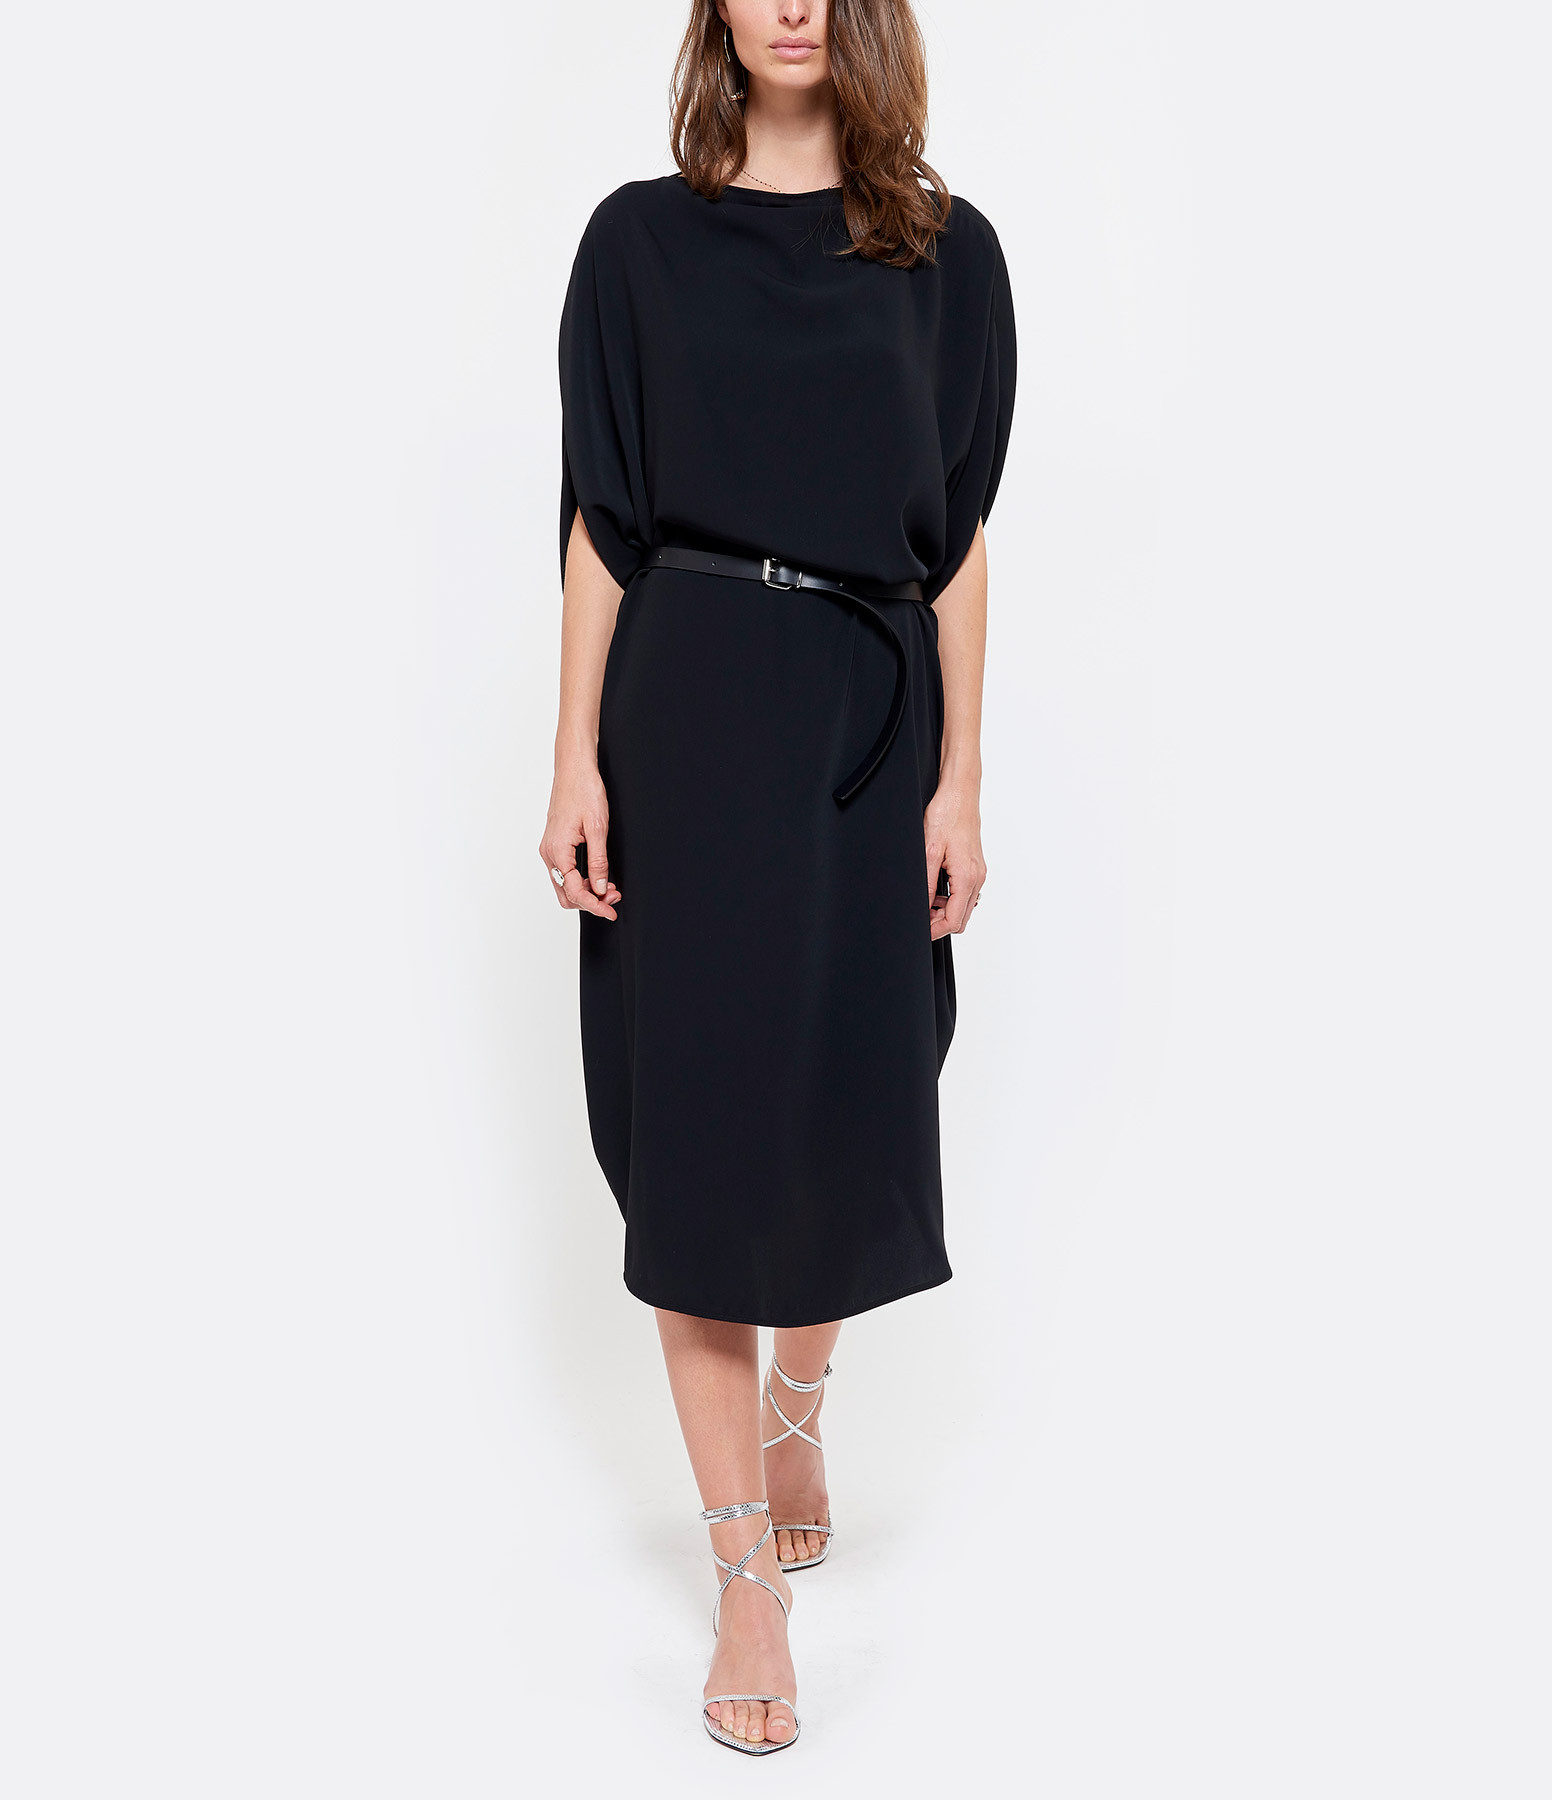 MM6 MAISON MARGIELA - Robe Cordon Noir, Collection Studio